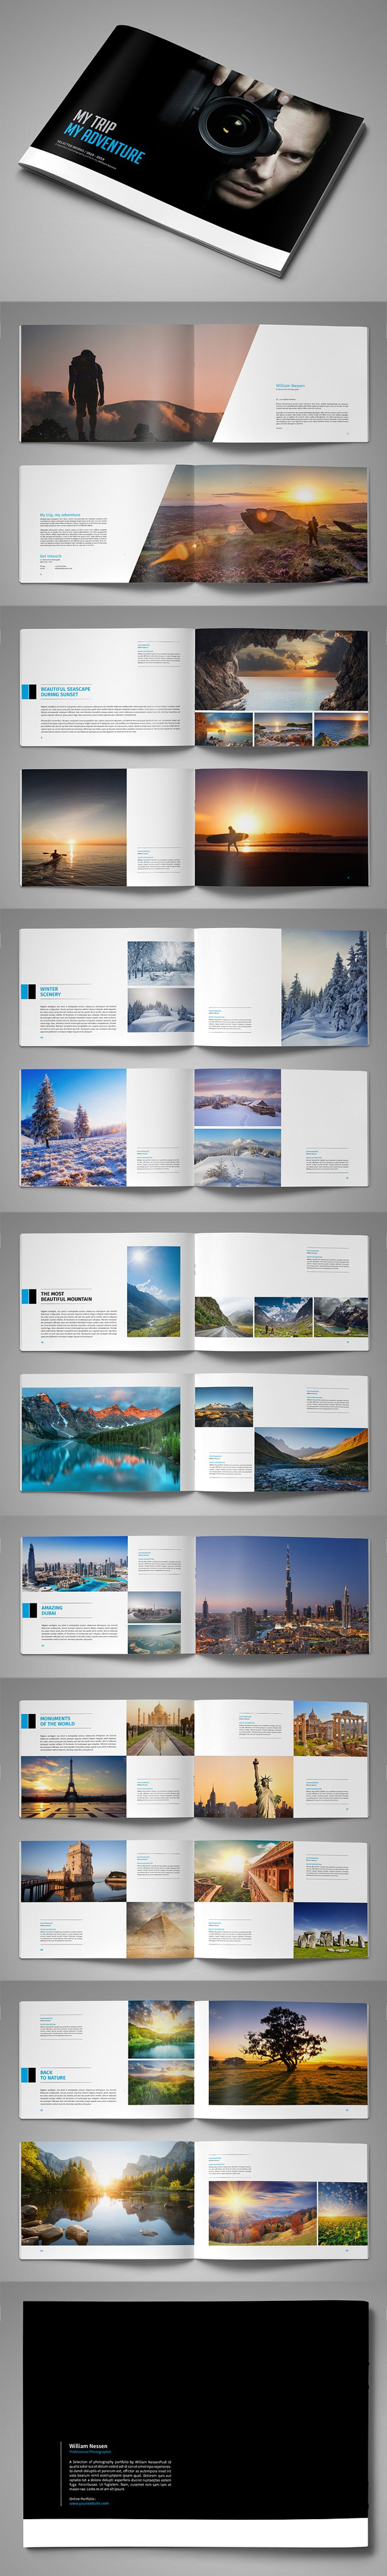 100 Professional Corporate Brochure Templates - 99